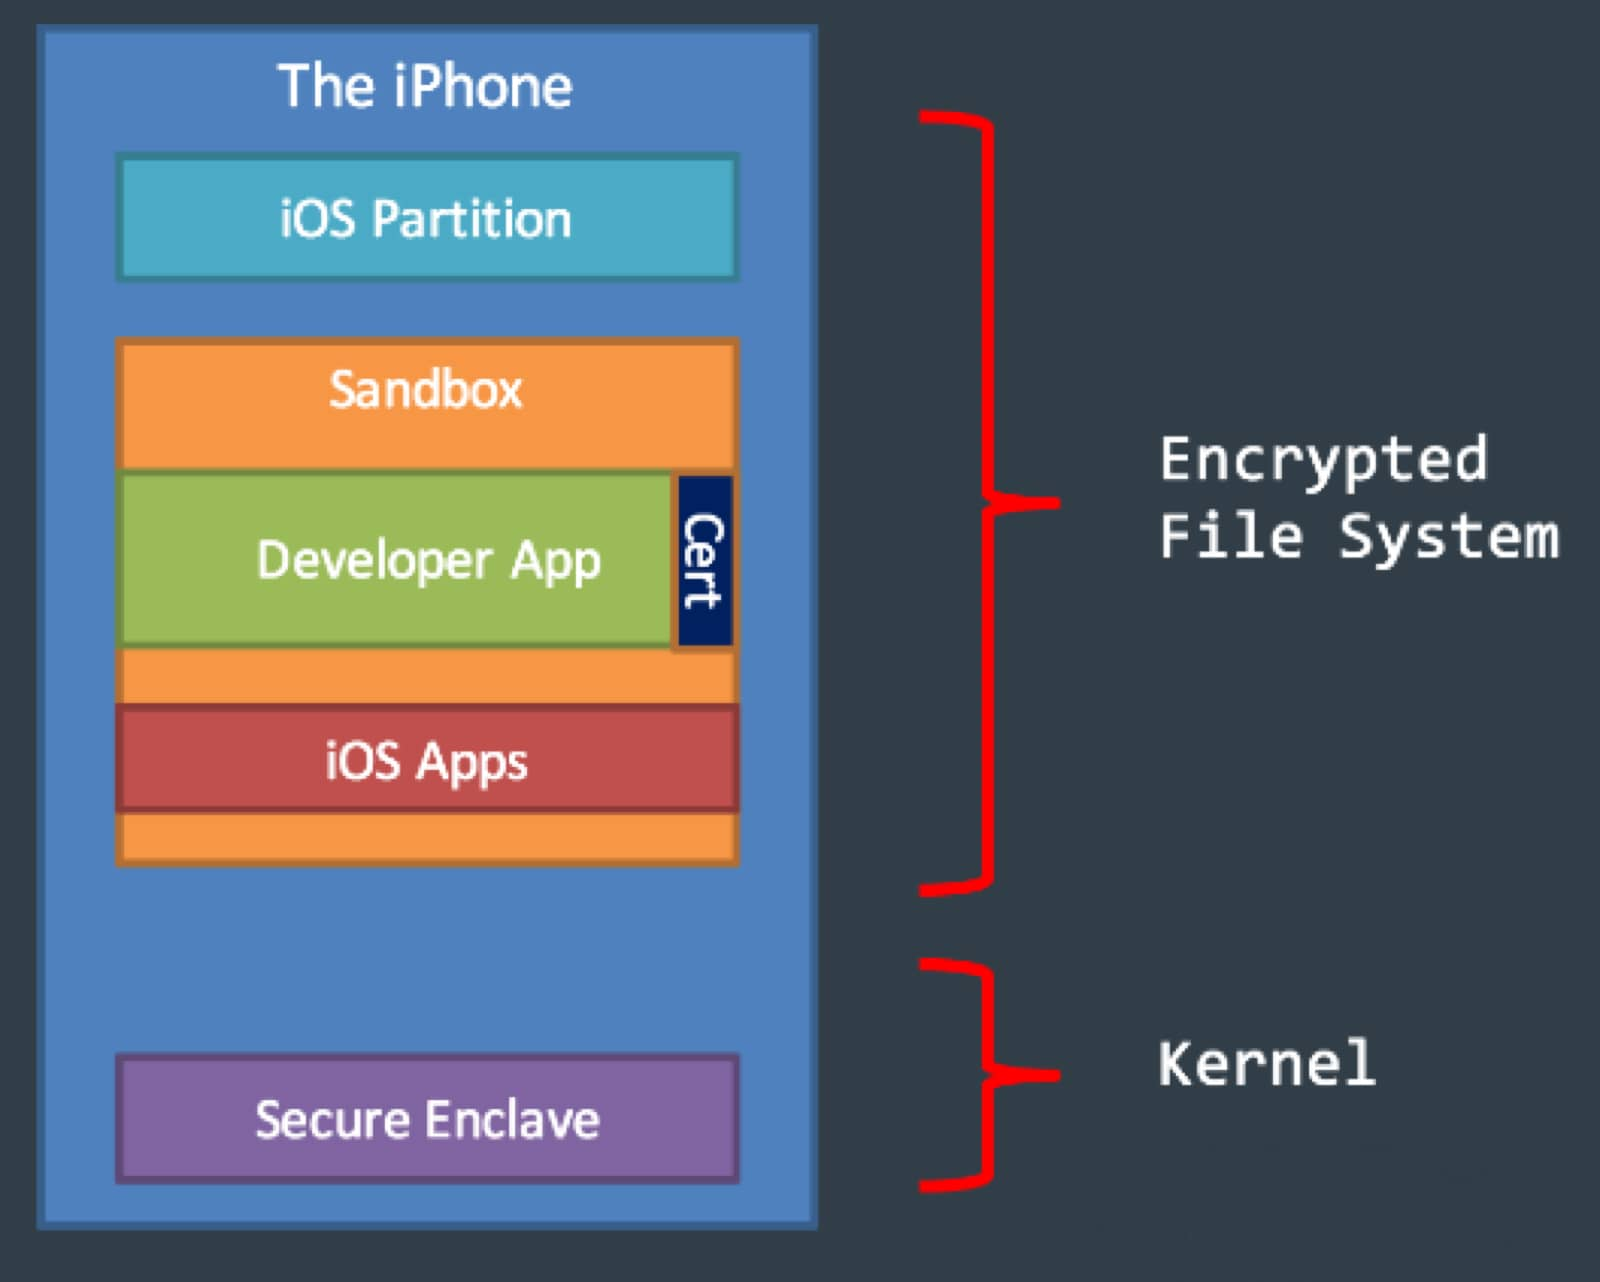 Mockup of iPhone security architecture with the secure enclave. The secure enclave hack doesn't affect this.